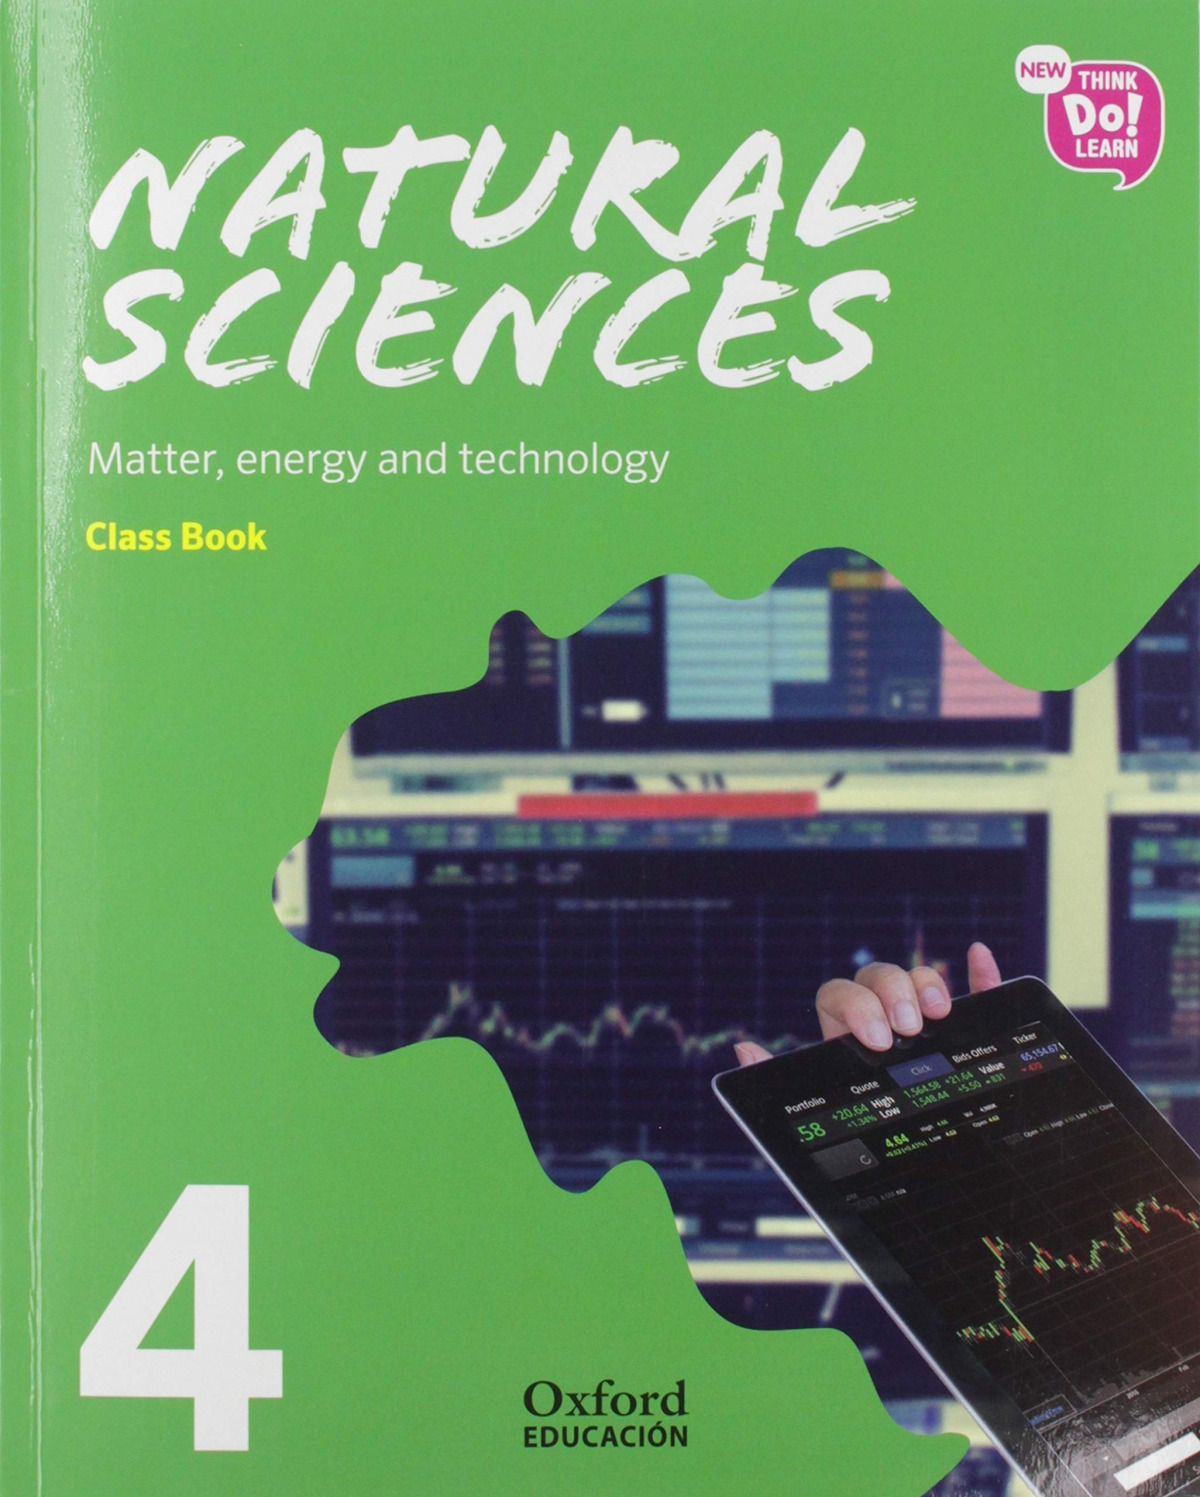 NATURAL SCIENCE 4 PRIMARY COURSEBOOK PACK NEW THINK DO LEARN